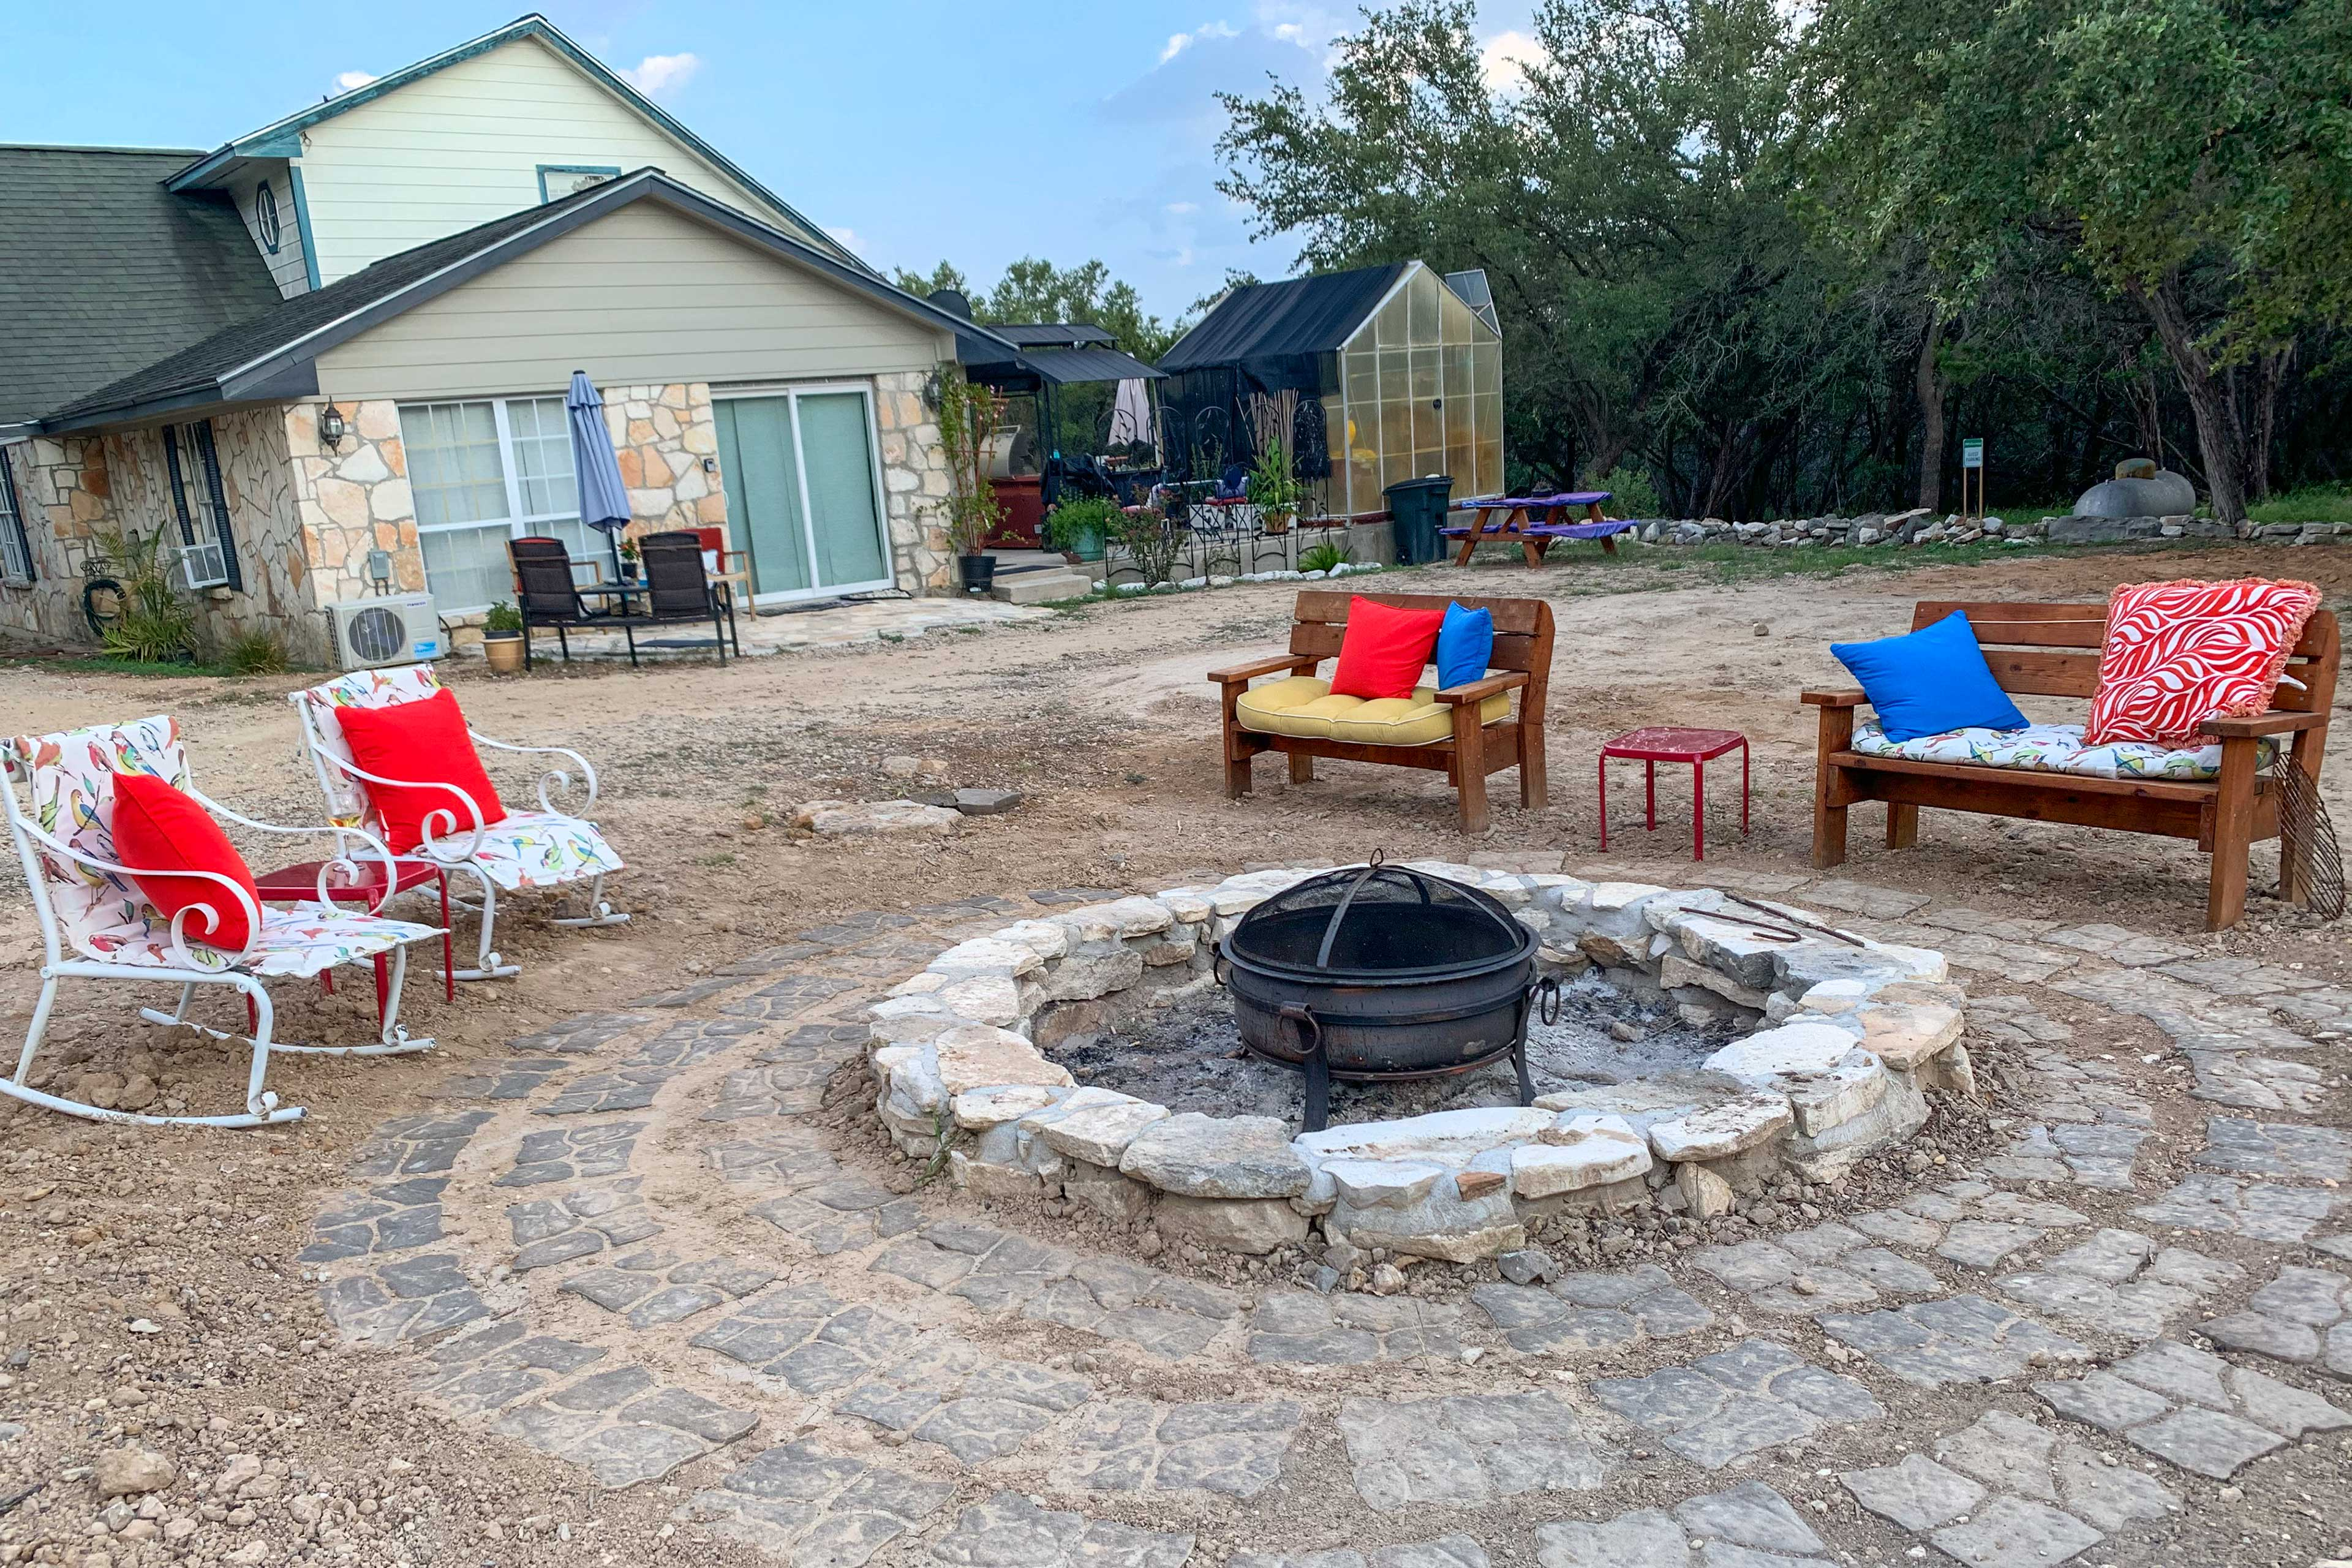 New Braunfels Vacation Rental   1BR   1BA   500 Sq Ft   No Steps Required